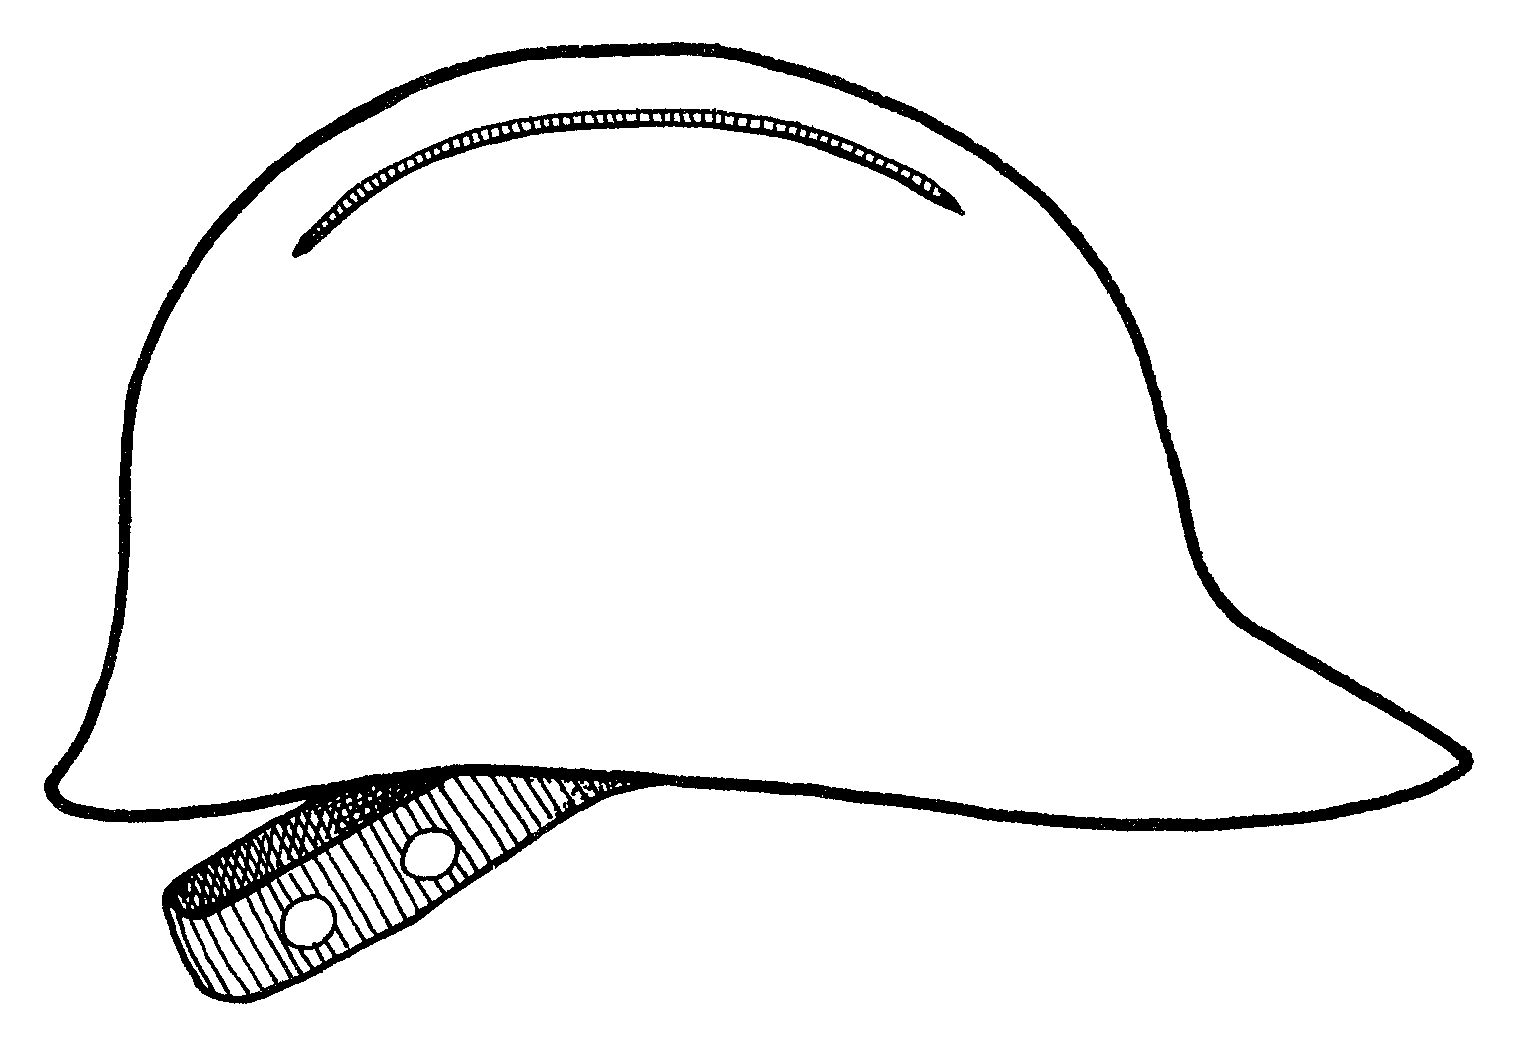 construction worker hat clipart - photo #37